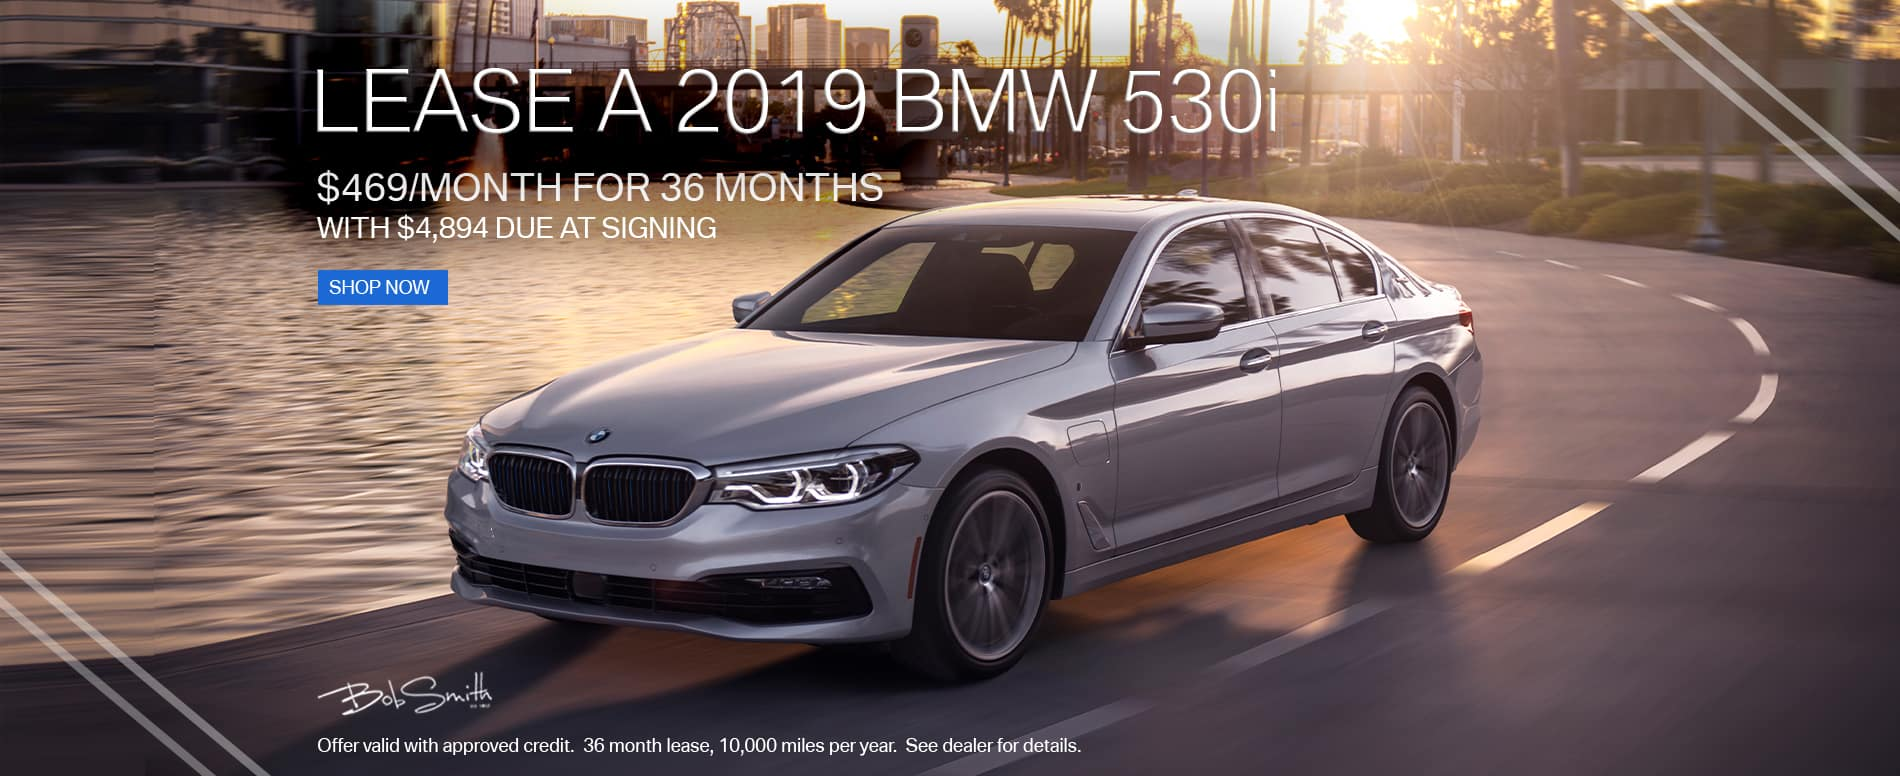 Bmw Dealer Near Me >> Bob Smith Bmw New Bmw And Used Car Dealer In Calabasas Ca